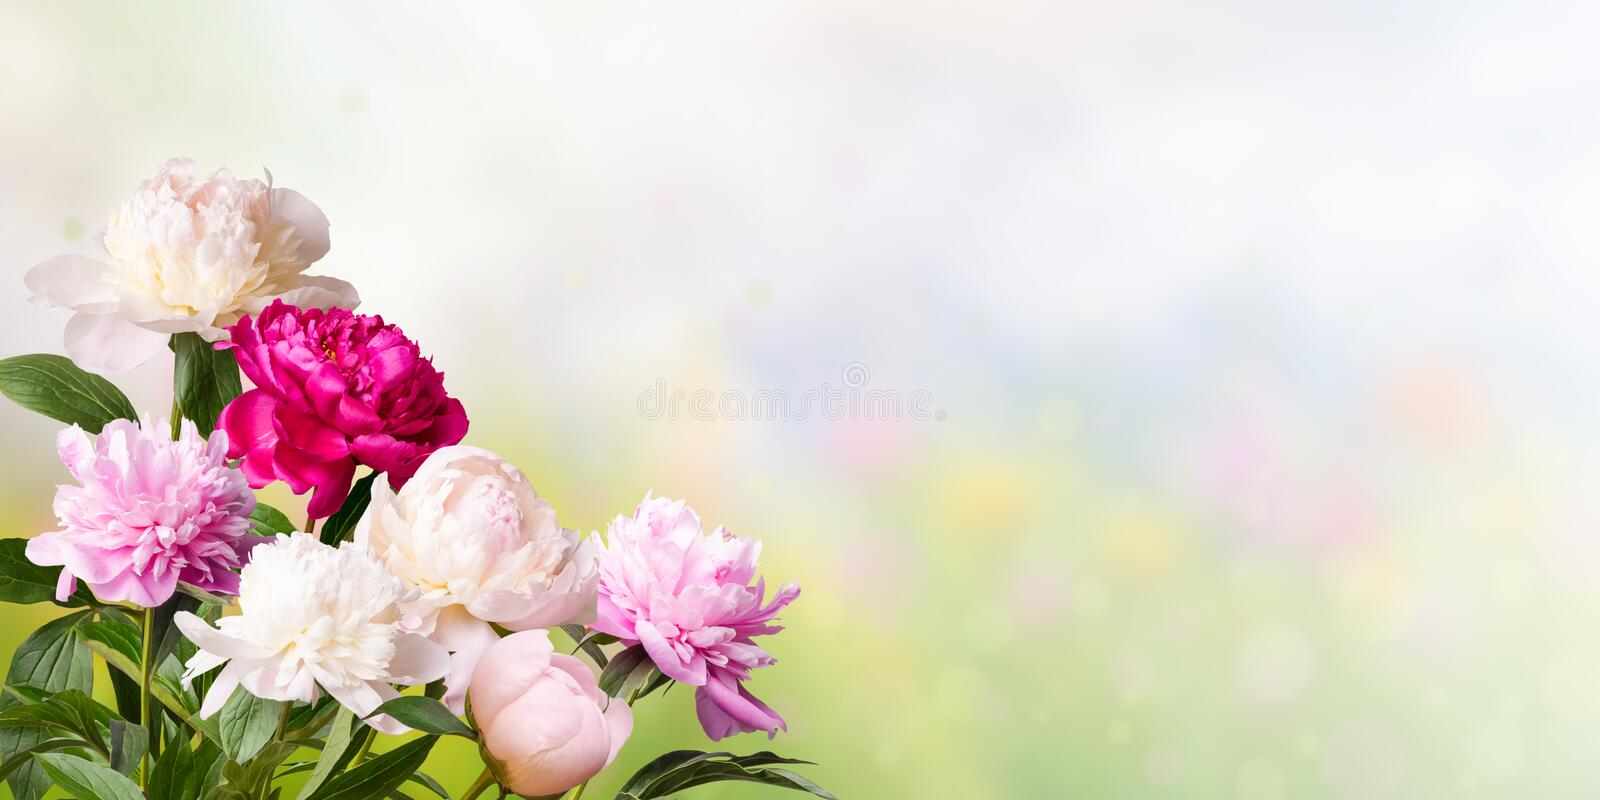 Floral Background with Peonies royalty free stock photo